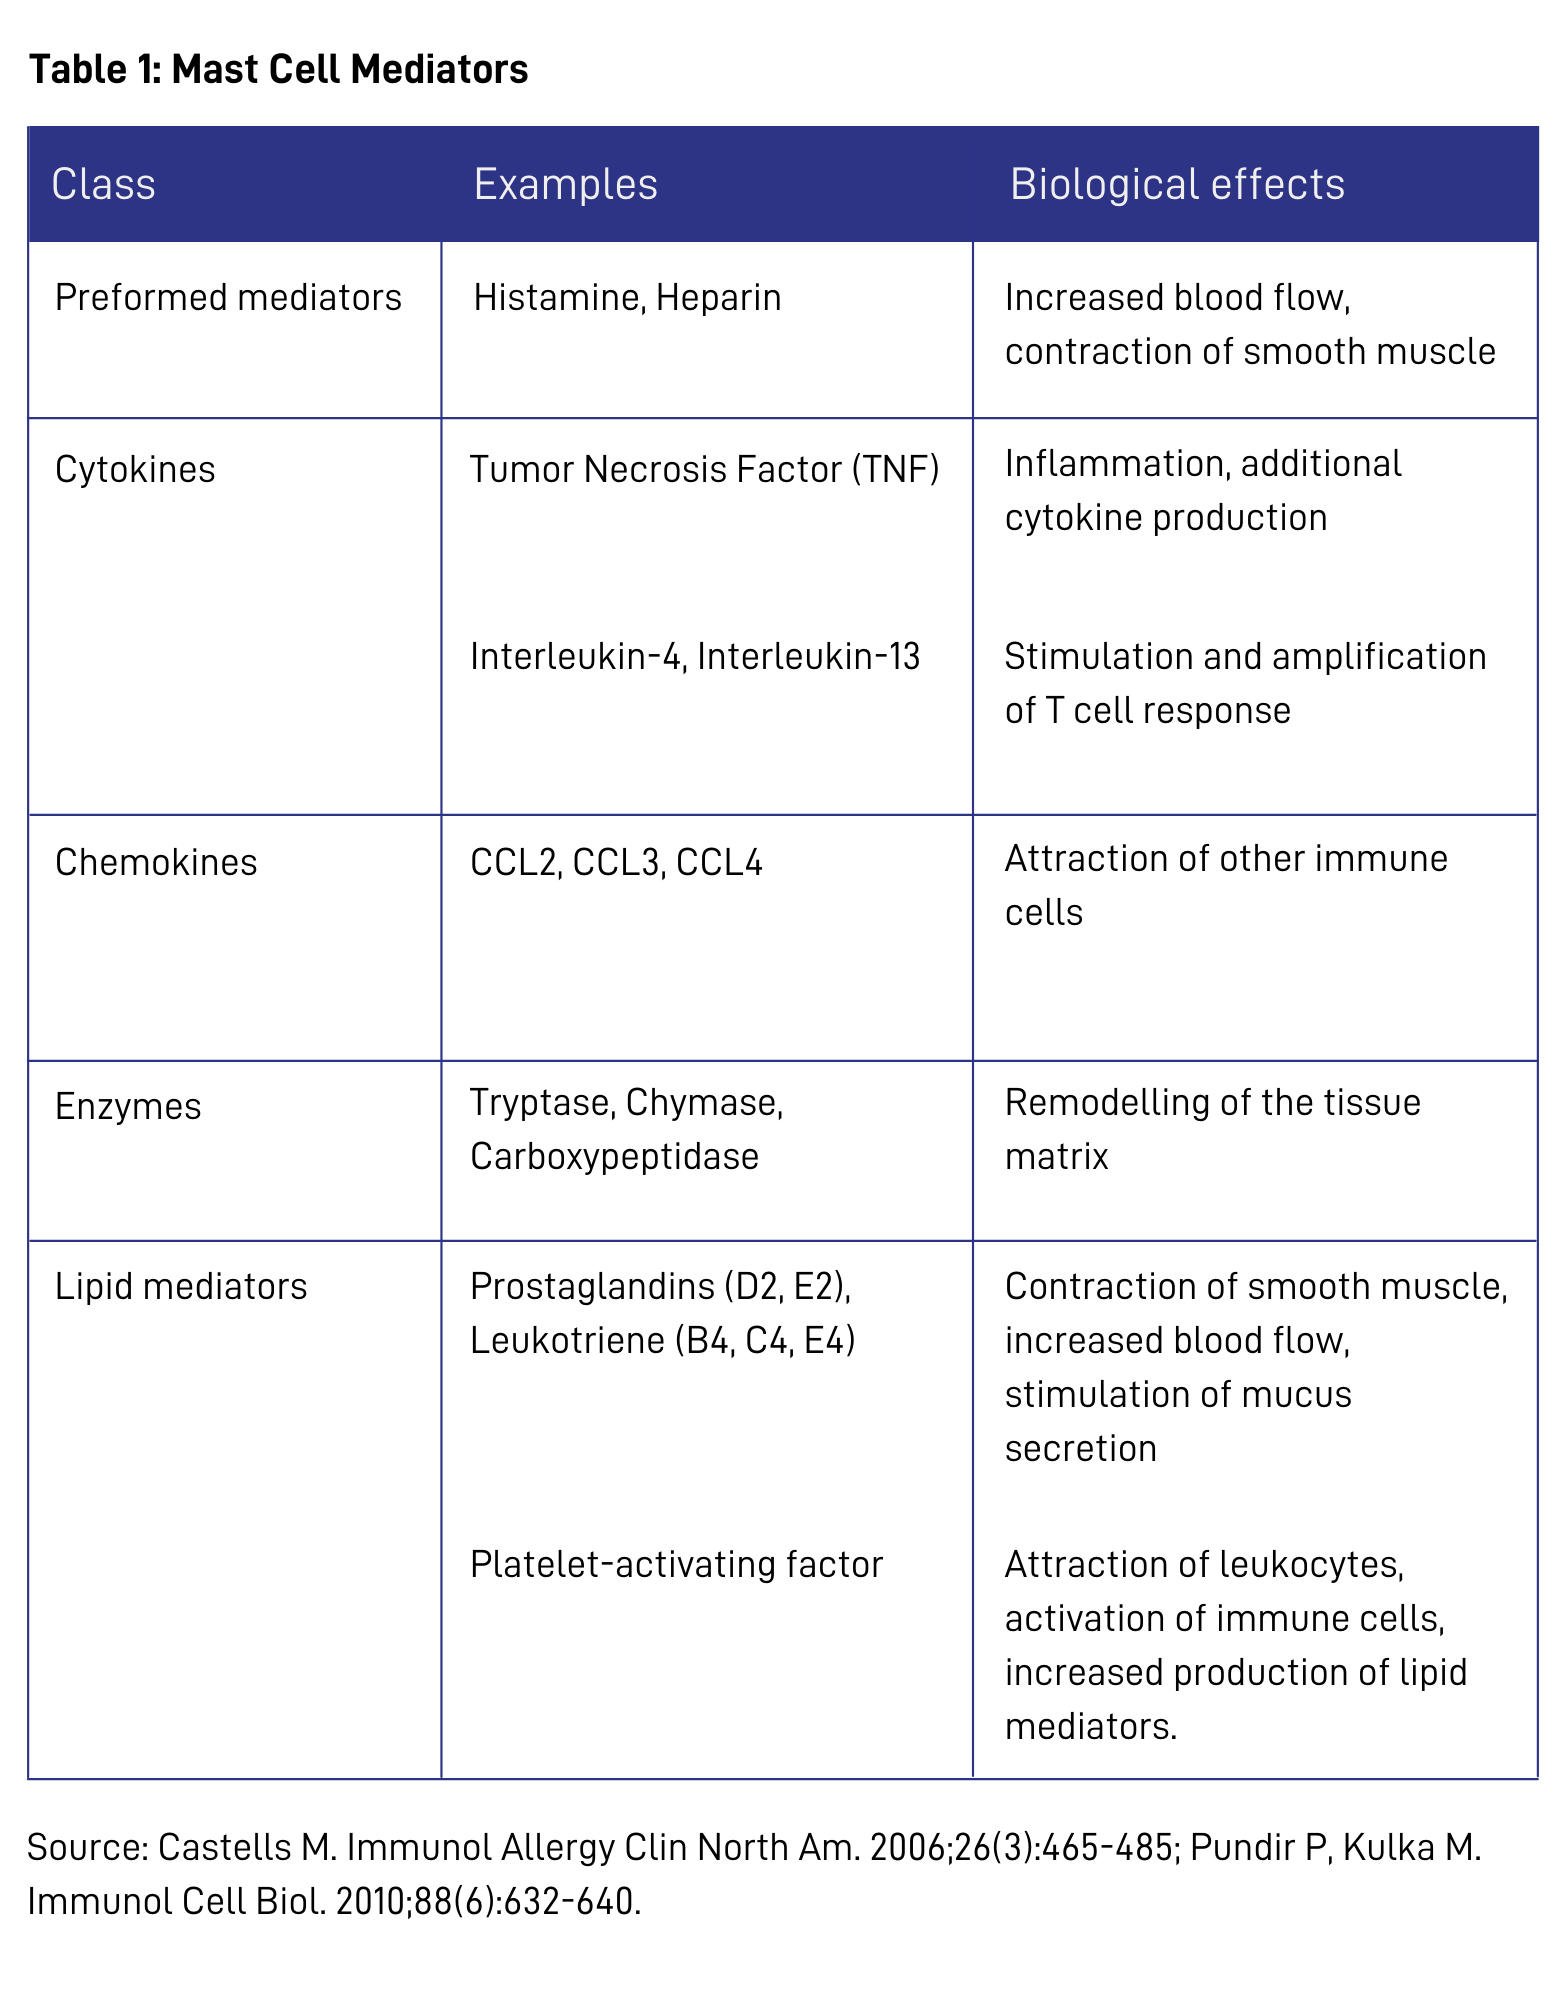 What are Mast Cells?